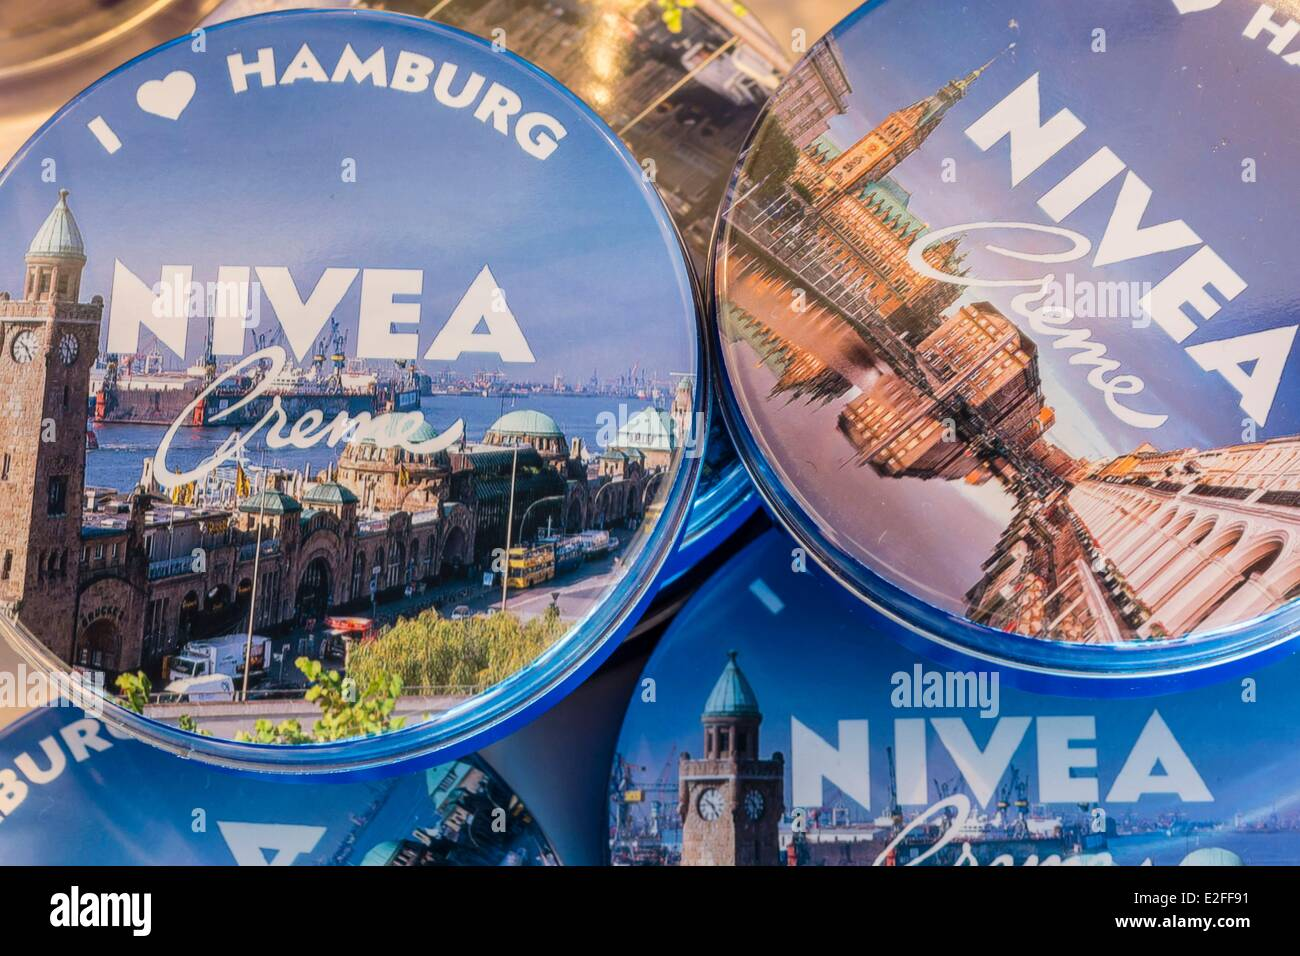 Germany, Hamburg, Nivea Haus, Nivea cream locally founded in 1911 and belonging to the German group Beiersdorf, - Stock Image